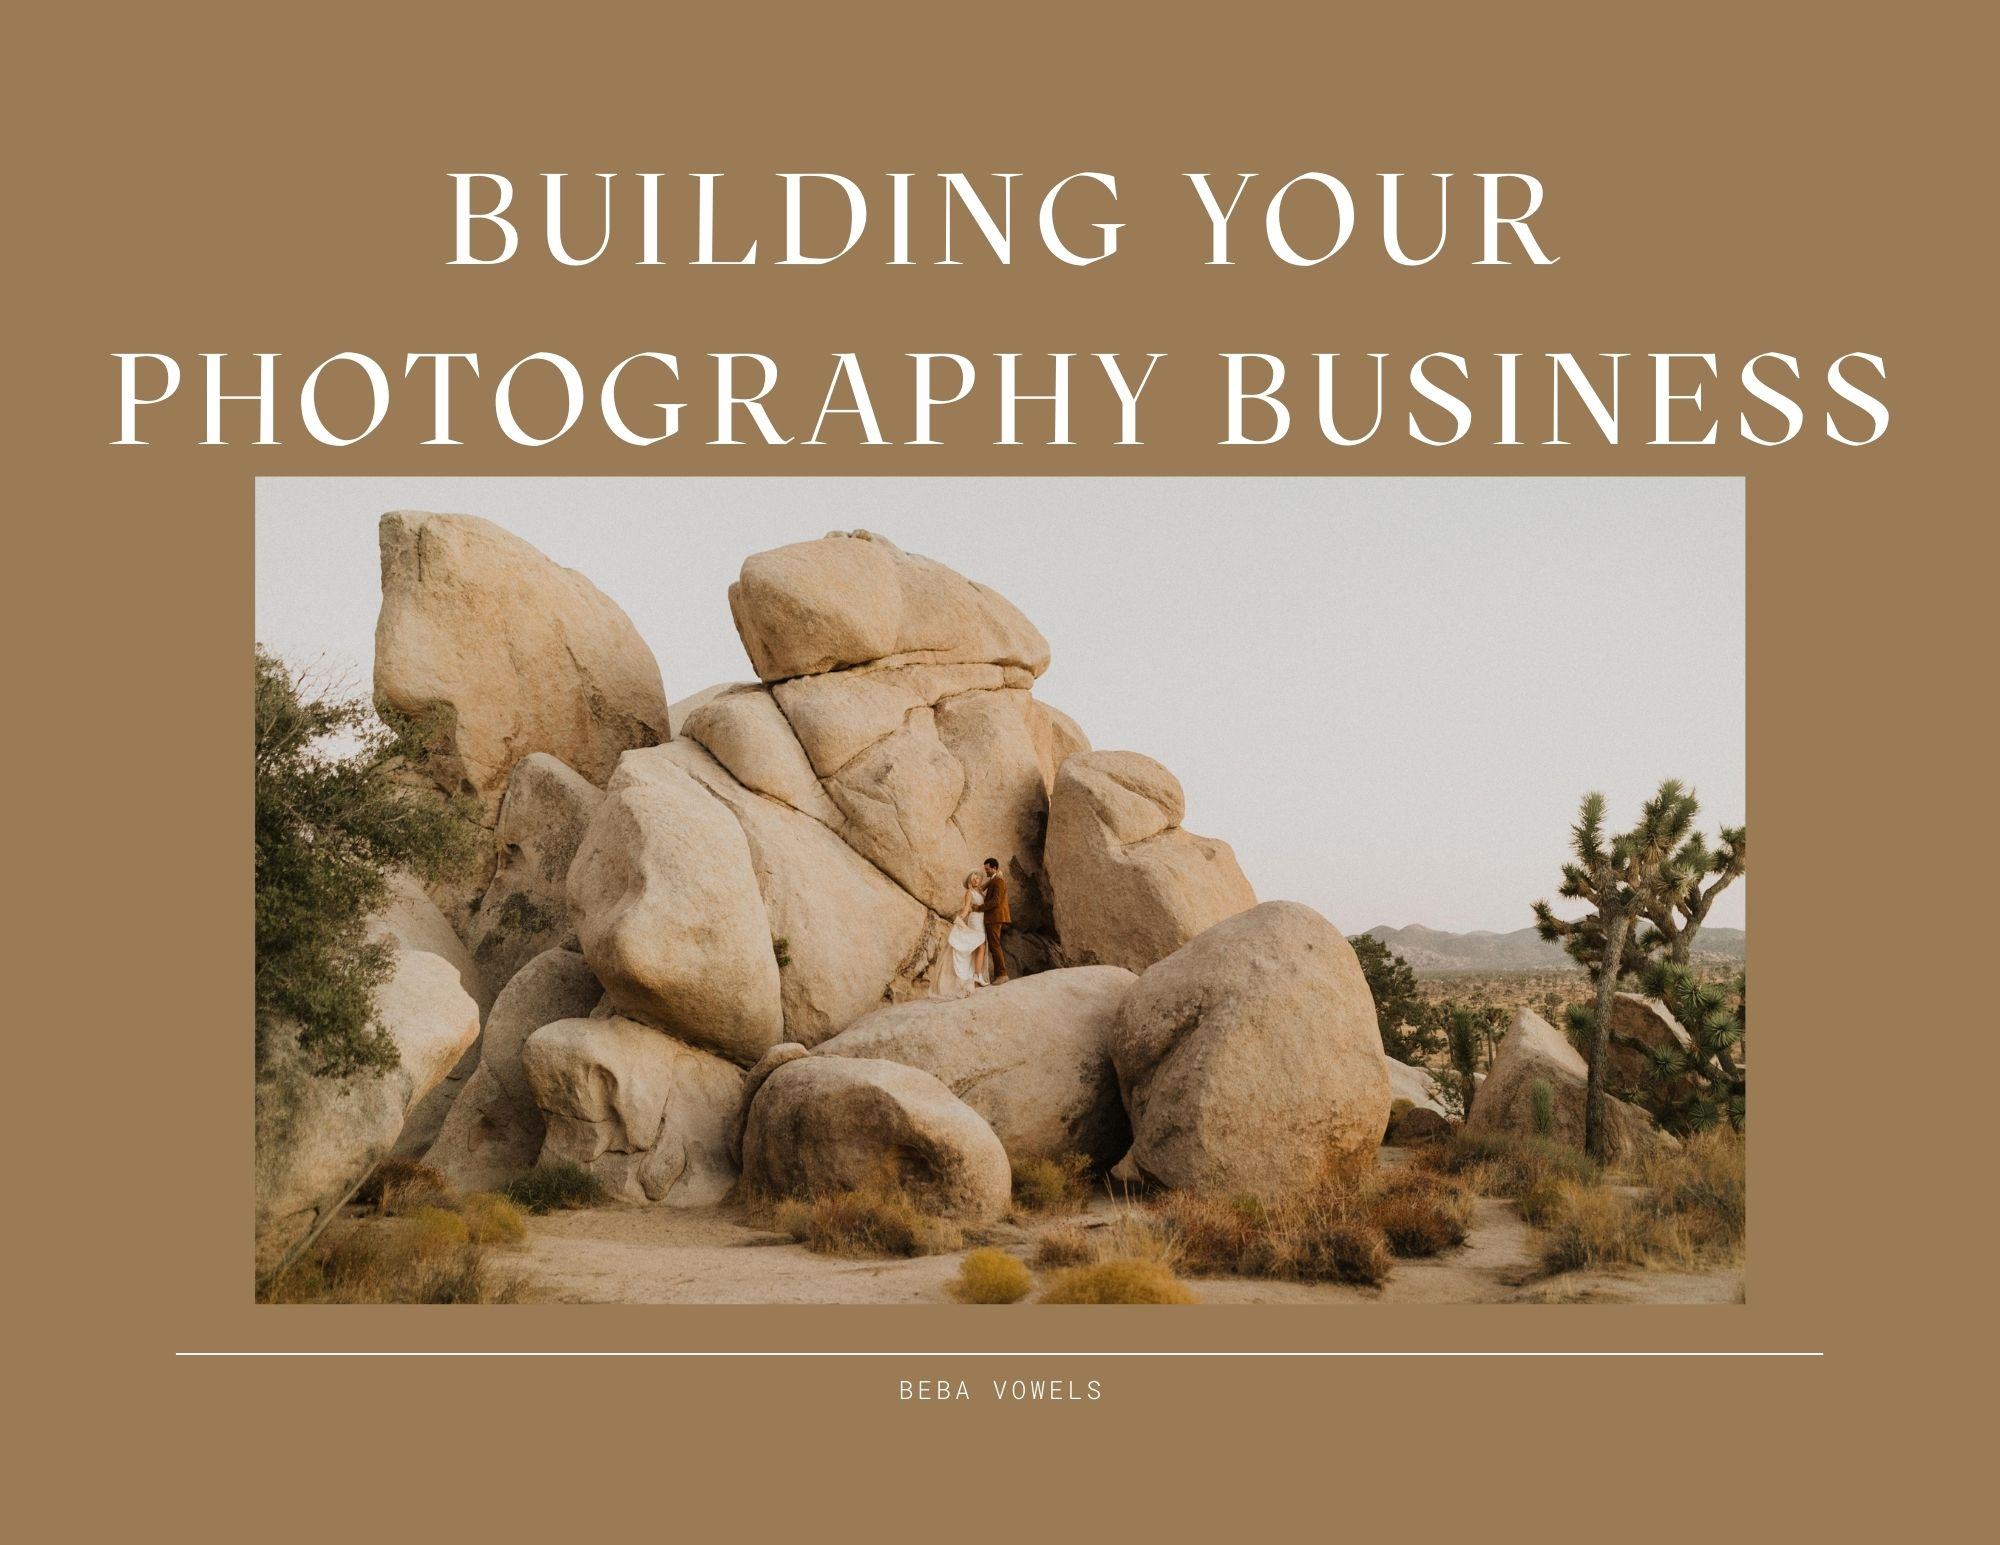 Beba Vowel - BUILDING YOUR PHOTOGRAPHY BUSINESS